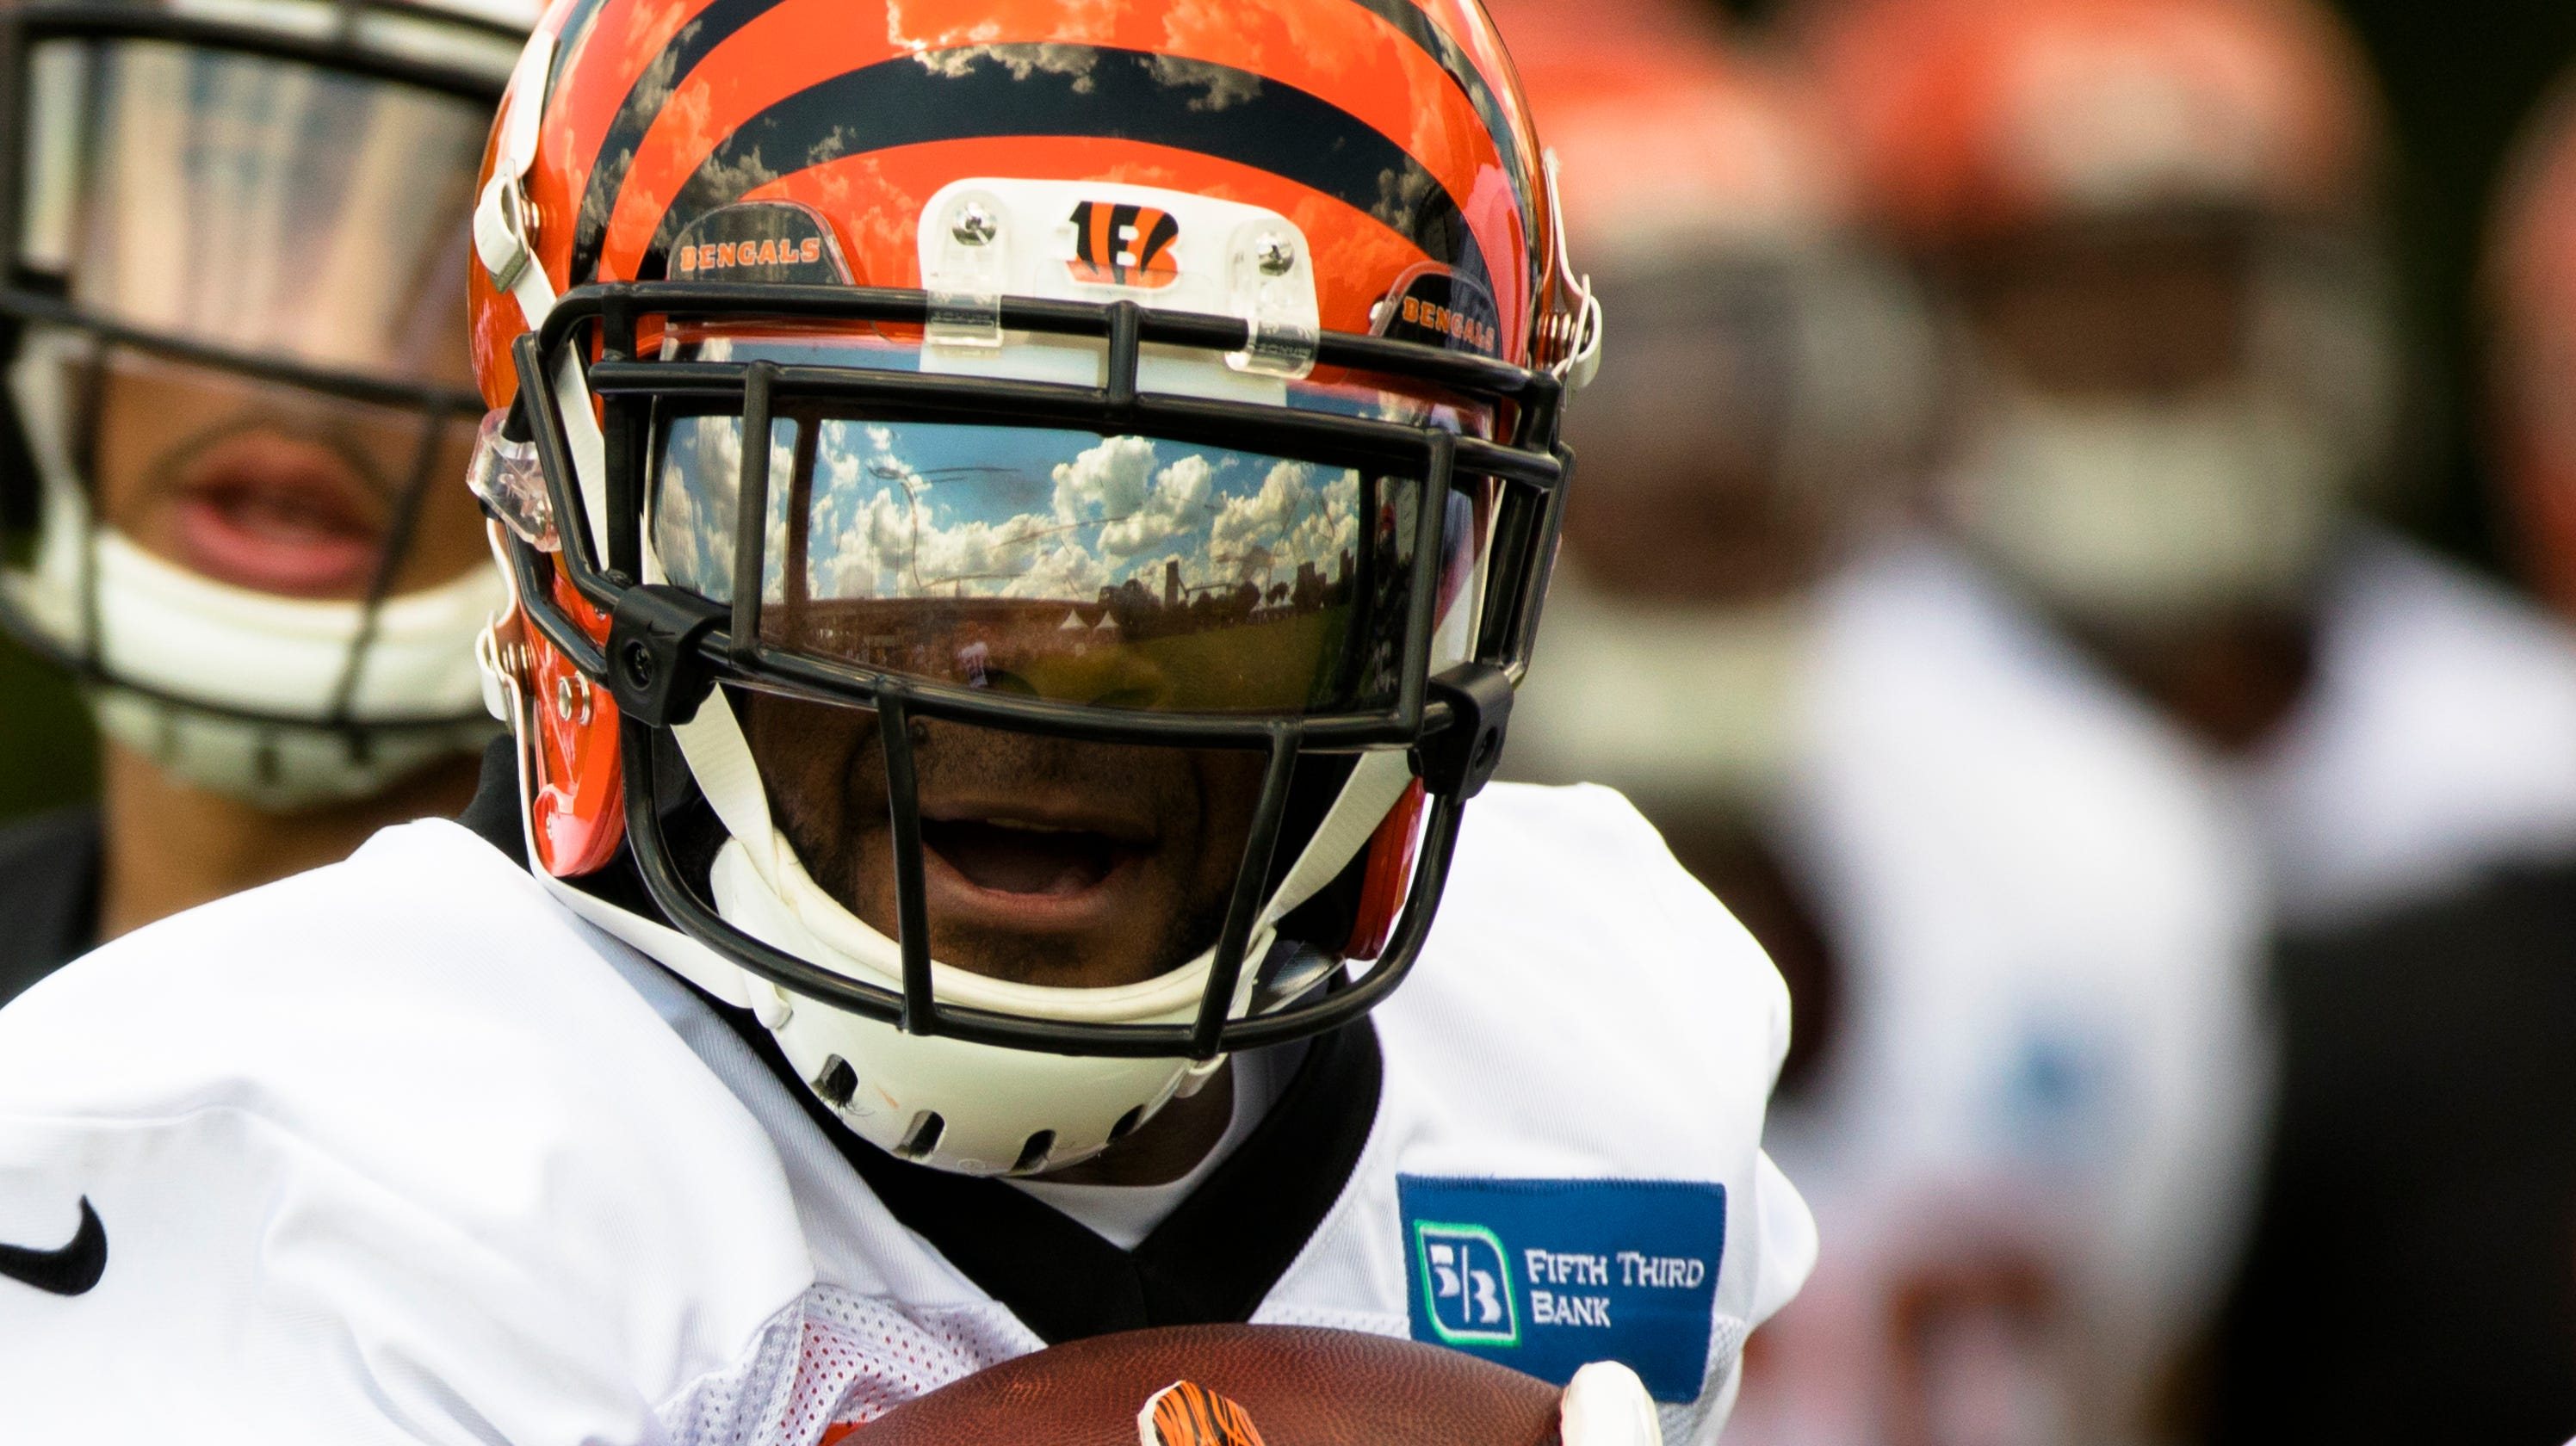 Bengals Walkthru: Bernard's thoughtful minivan gift and rare